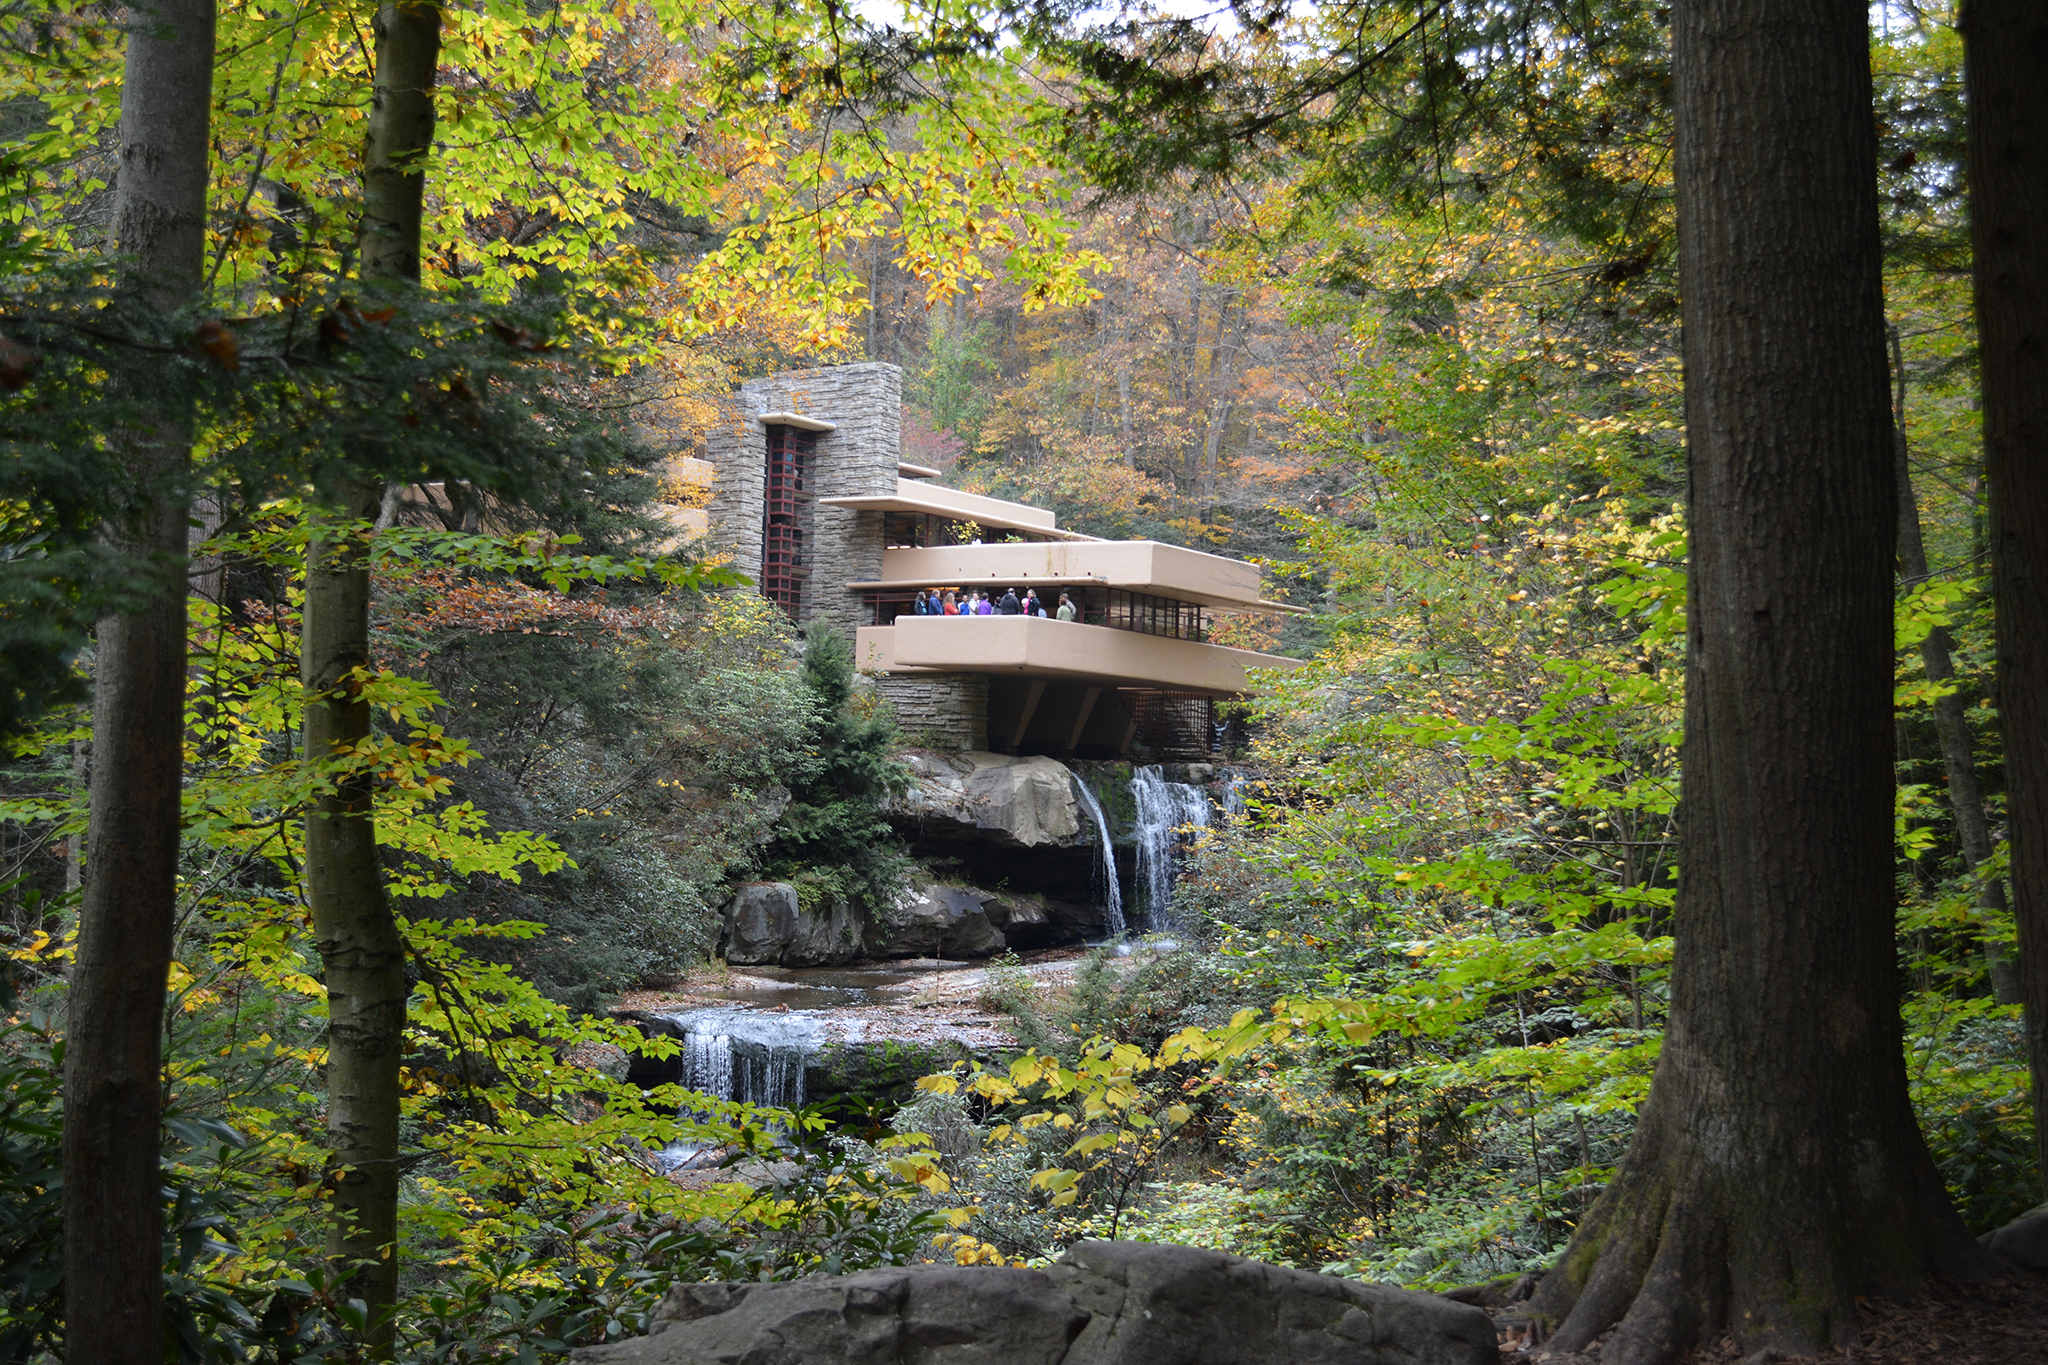 Frank Lloyd Wright Falling Water Wallpaper 13 Best Architects Of All Time And Their Greatest Buildings